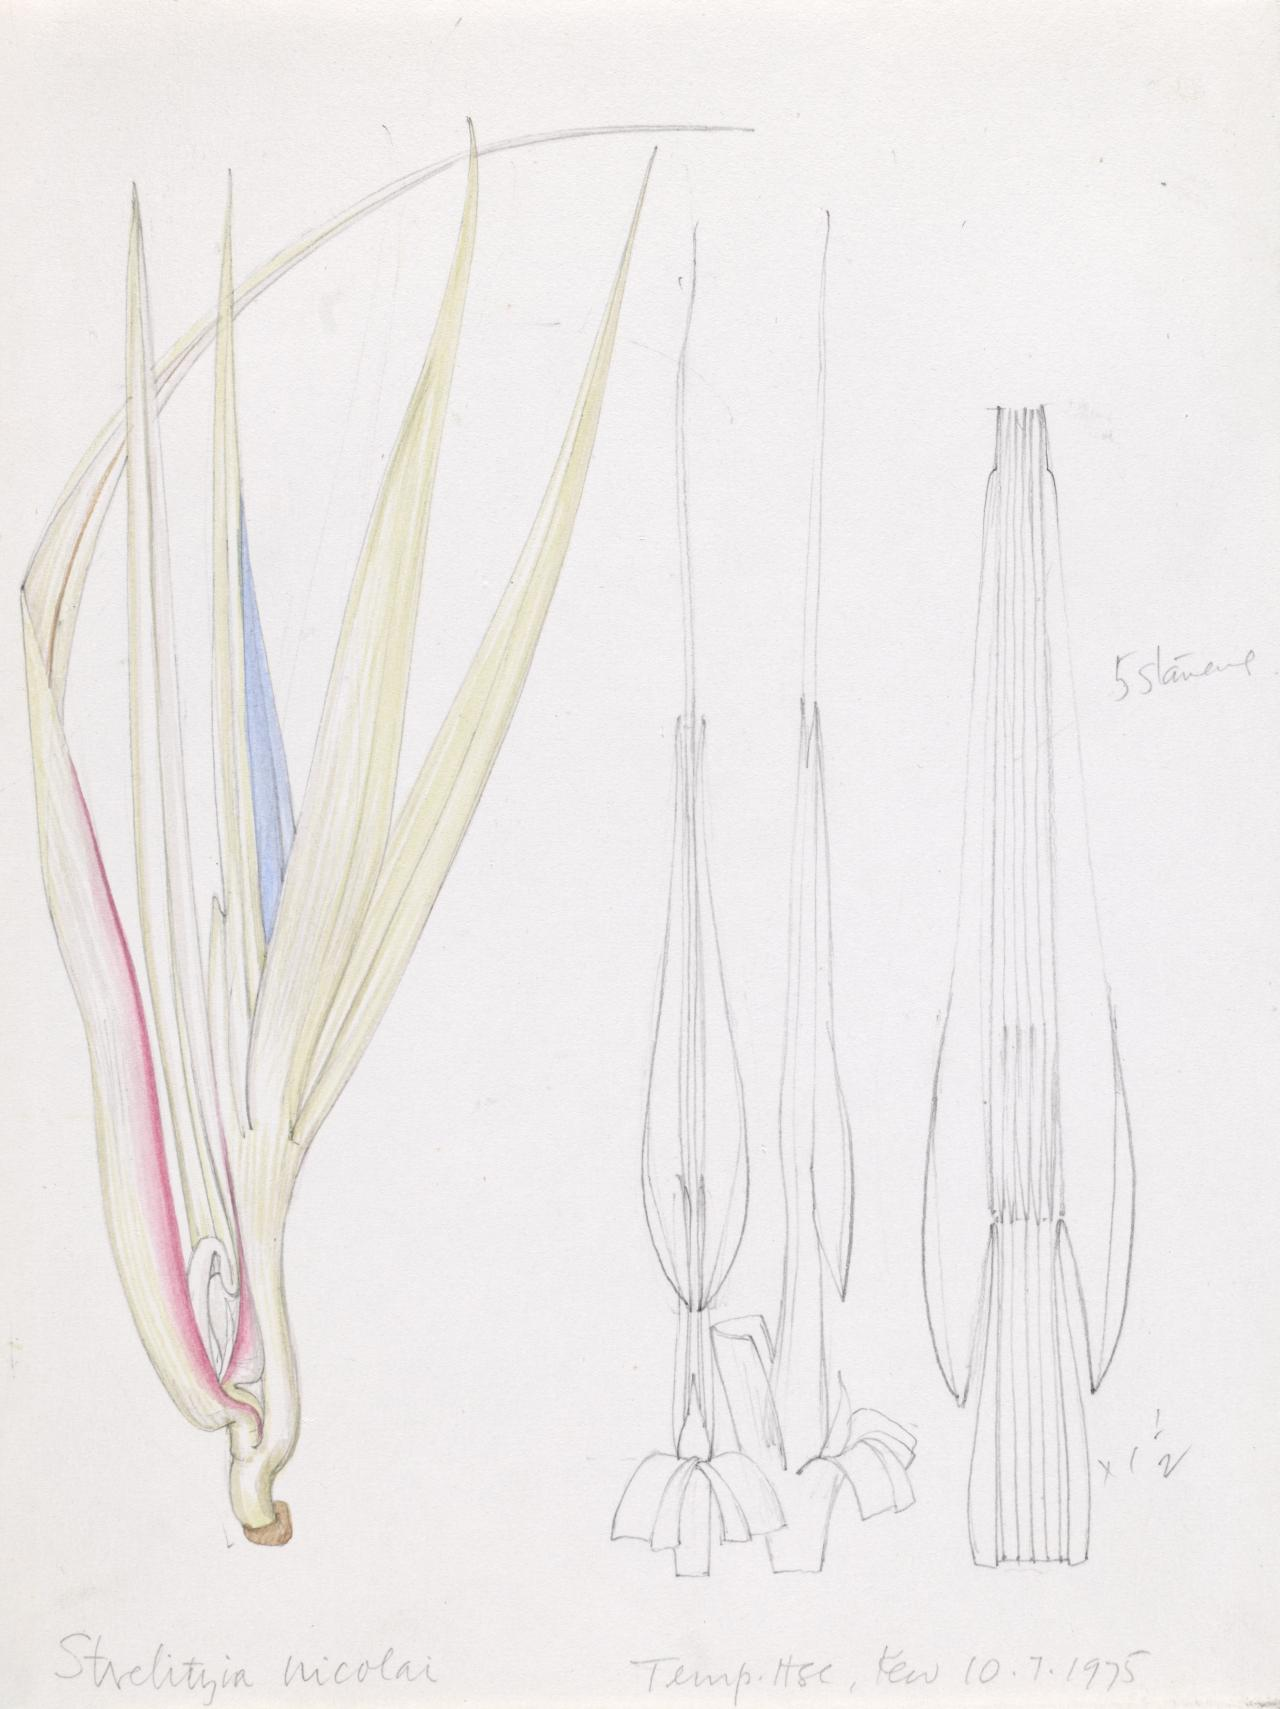 Working drawing for Strelitzia nicolai